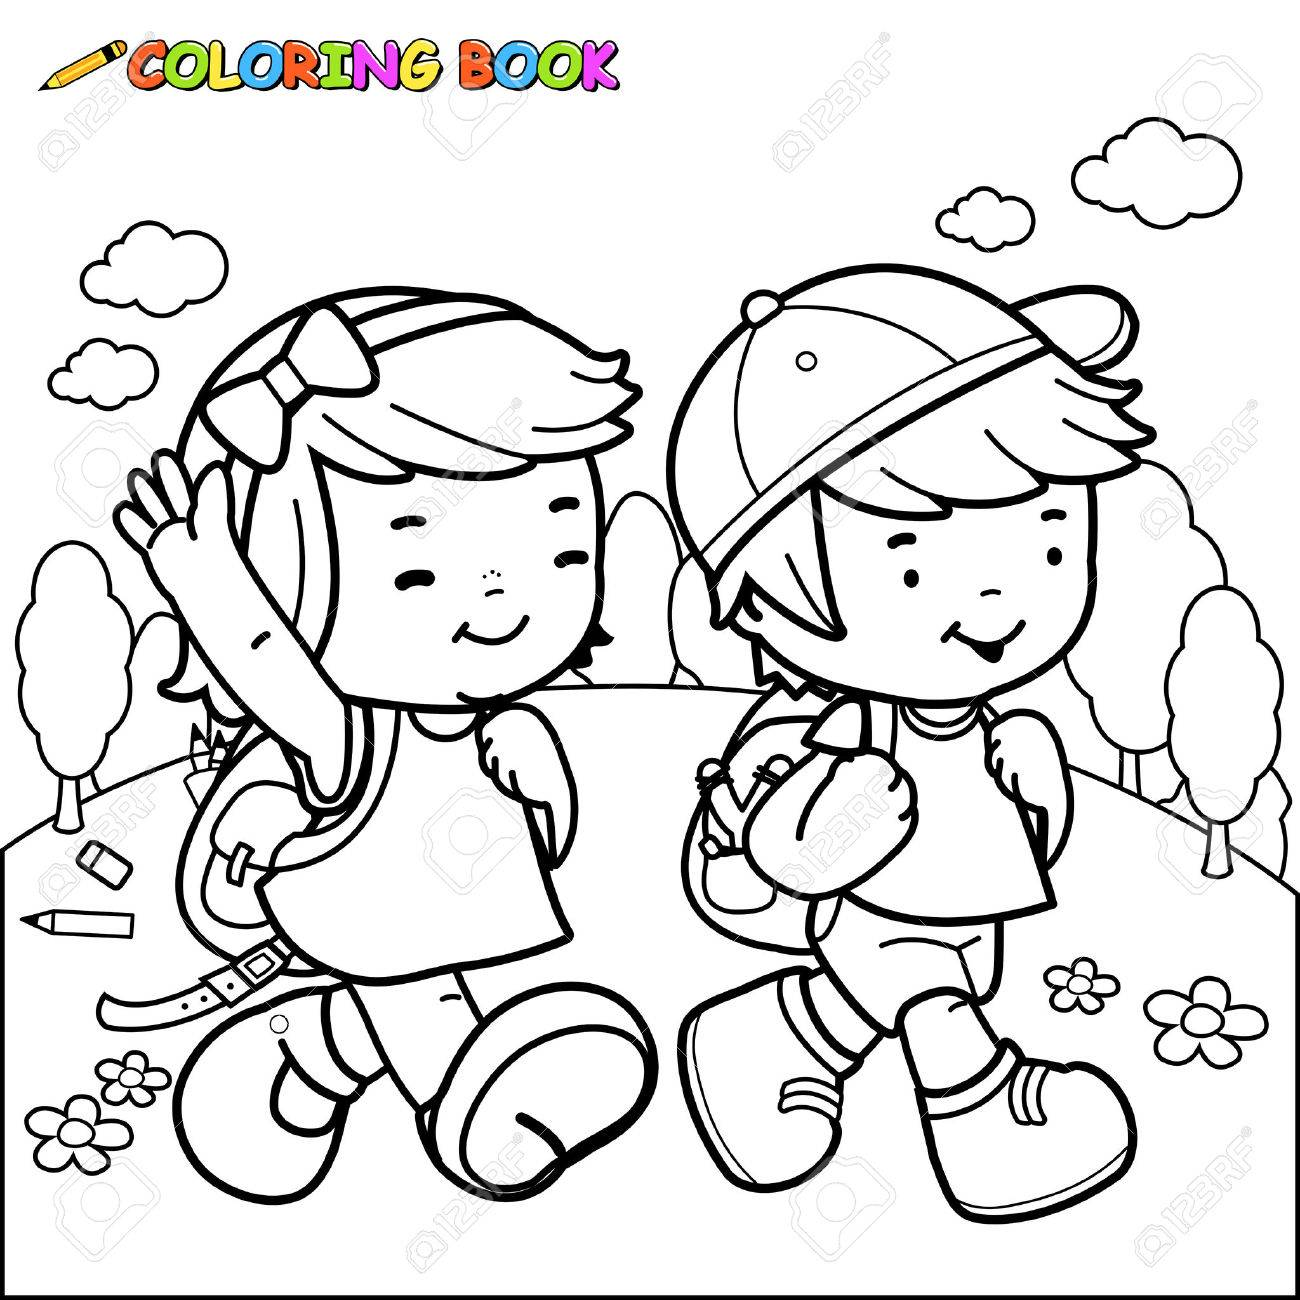 children walk to coloring book page royalty free cliparts